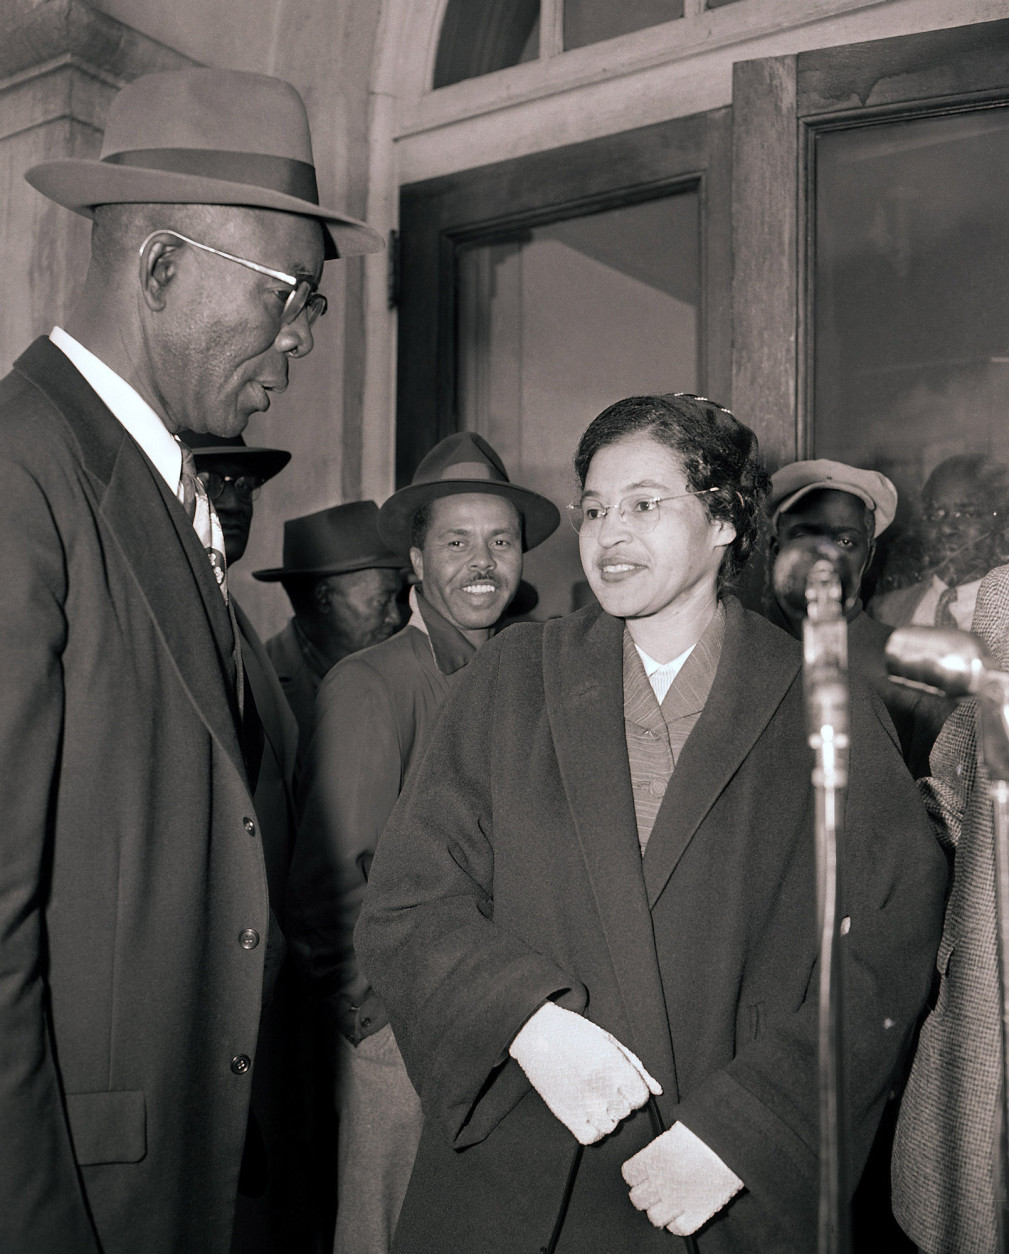 Mrs. Rosa Parks and E.D. Nixon, left, former president of the Alabama NAACP, arrive at court in Montgomery March 19, 1956 for the trial in the racial bus boycott.  Mrs. Parks was fined $14 on Dec. 5 for failing to move to the segregated section of a city bus.  The boycott started on the day she was fined.  There were 91 other defendants. (AP Photo/Gene Herrick)